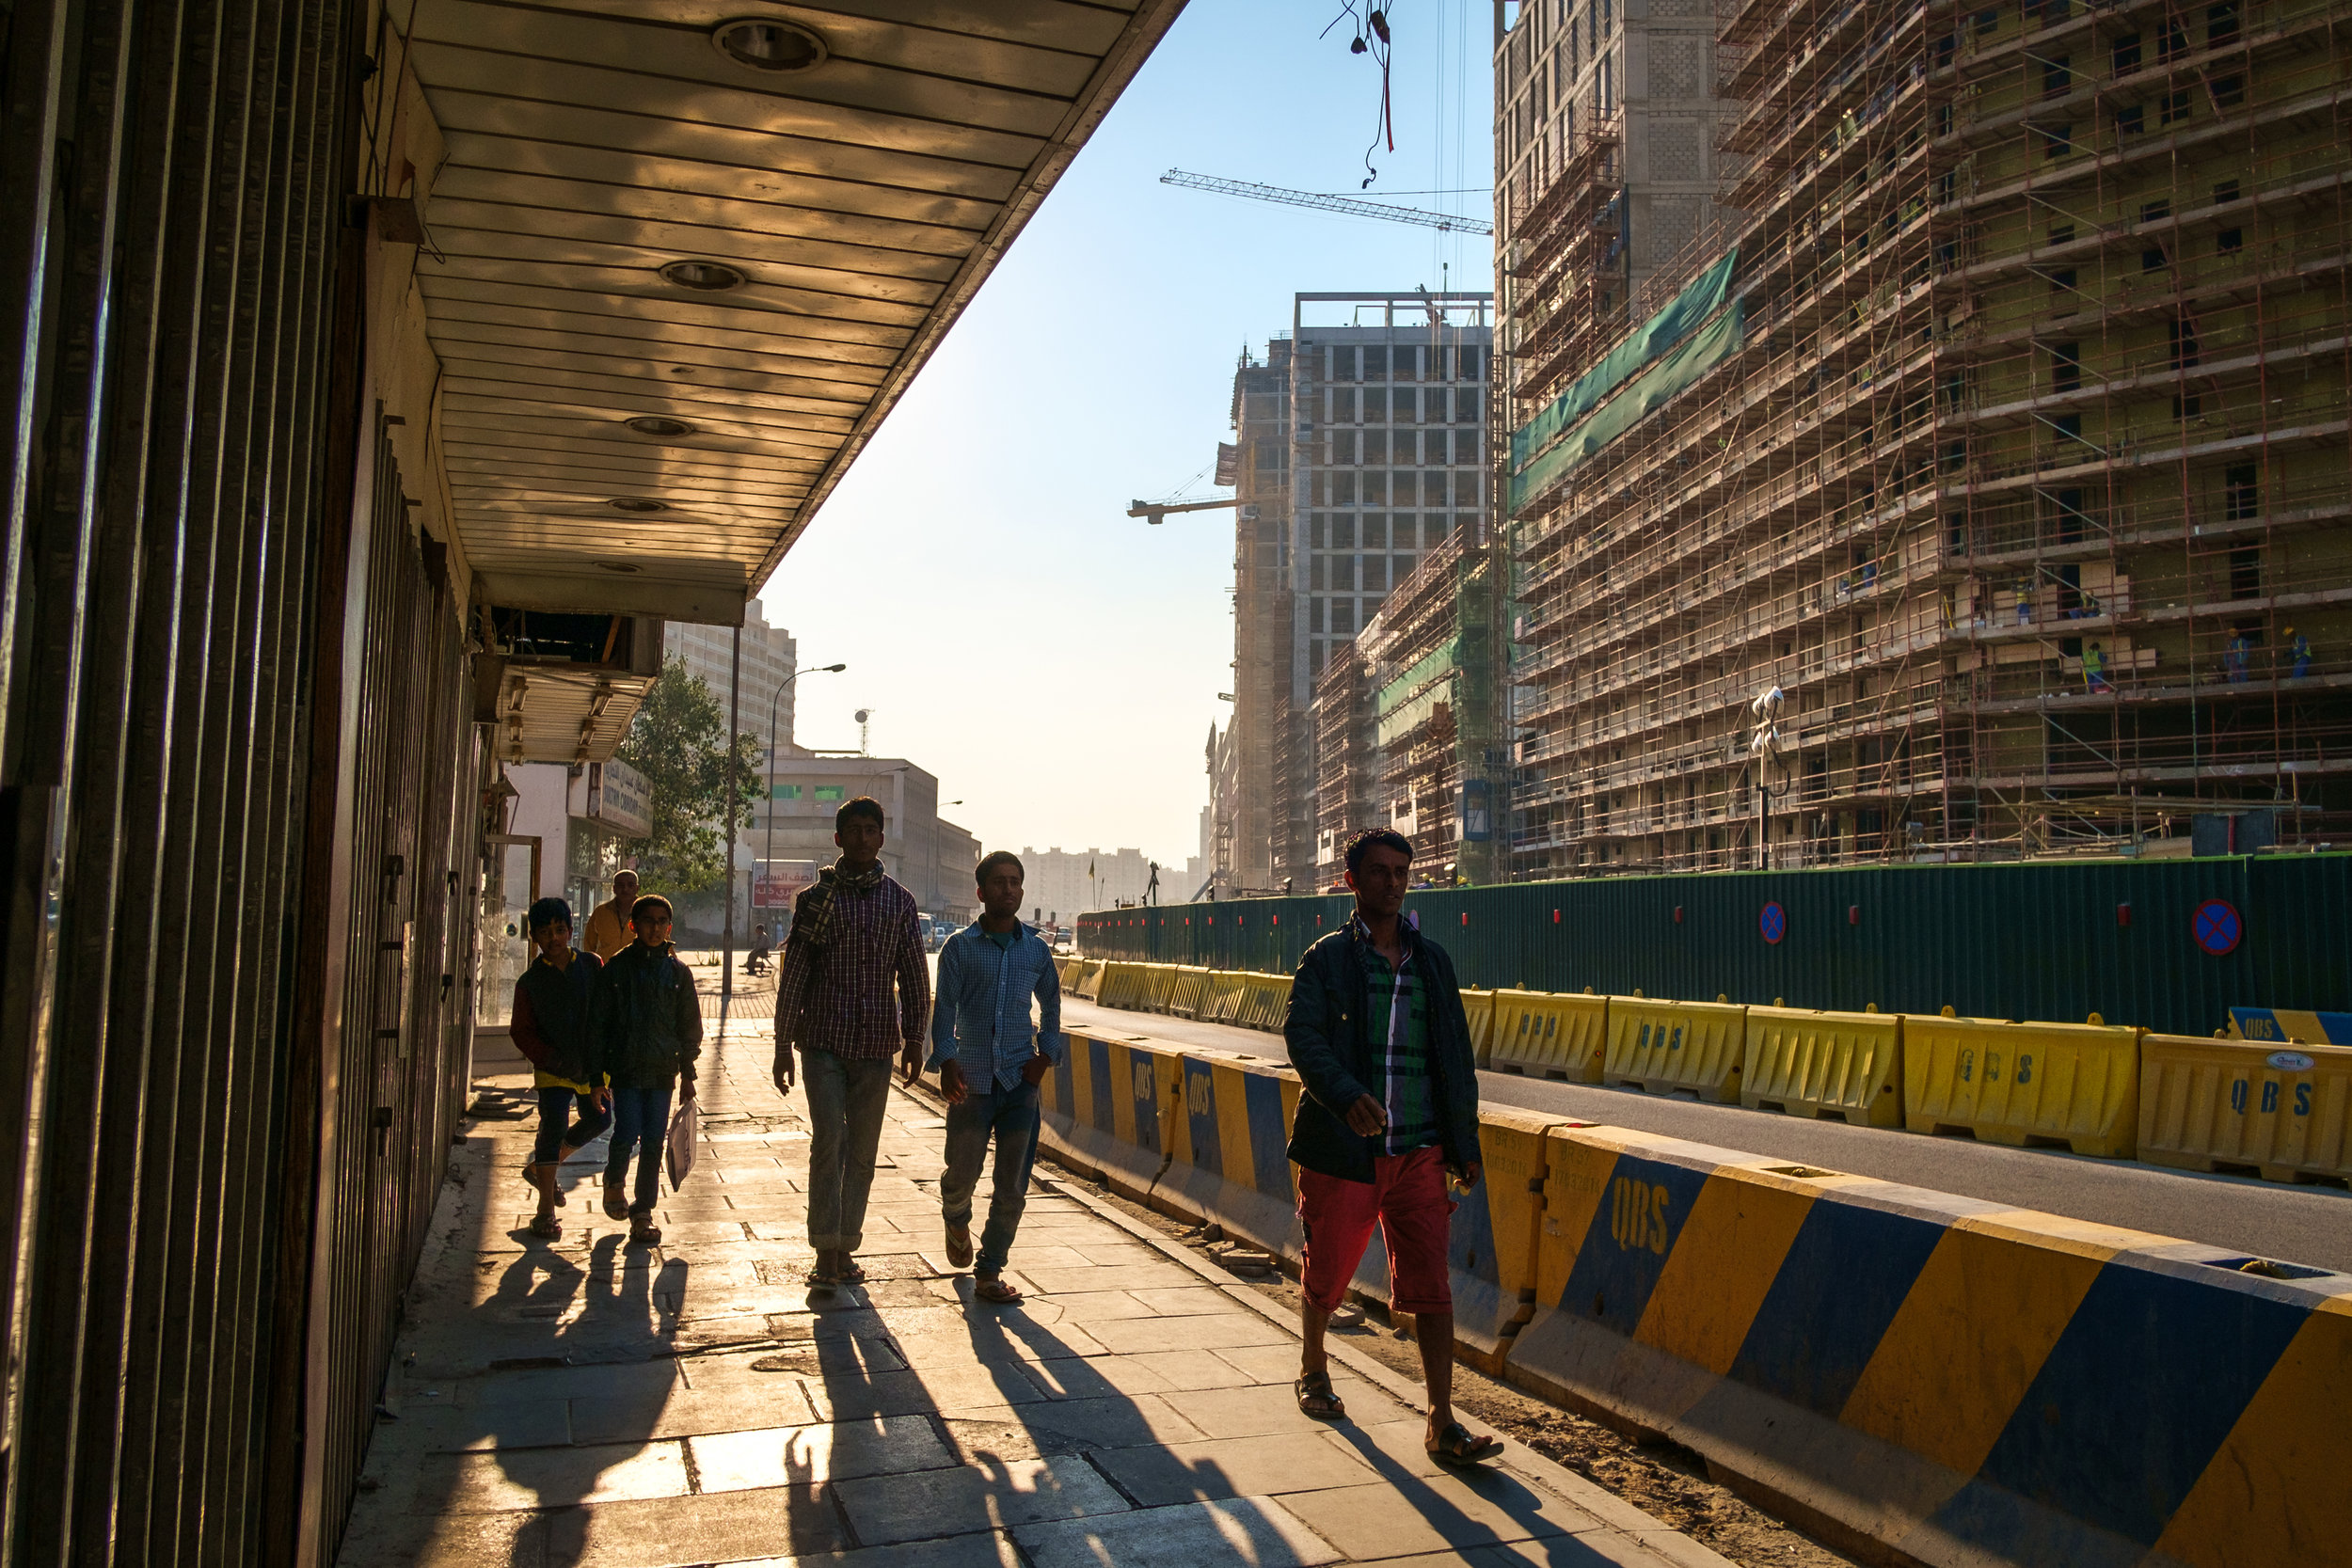 A street scene in the old Musheireb neighborhood of Doha with the new Msheireb development rising above it. Much of this old part of Doha has been torn down as Qatar races to revitalize and modernize in time to host the 2022 FIFA World Cup.